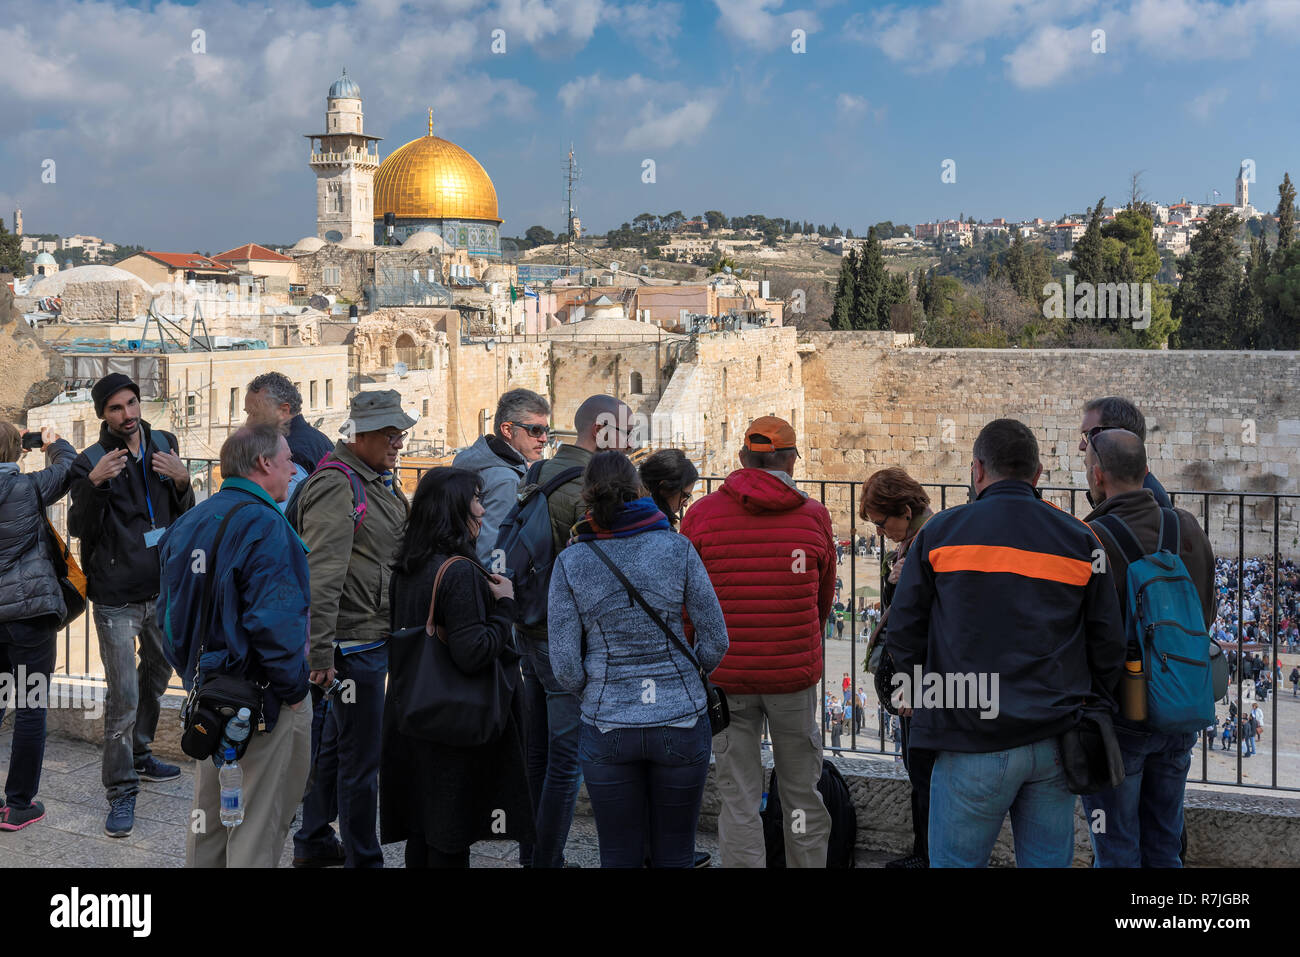 Group of tourists on a historical tour near the Western Wall in Jerusalem Old City, Israel. - Stock Image